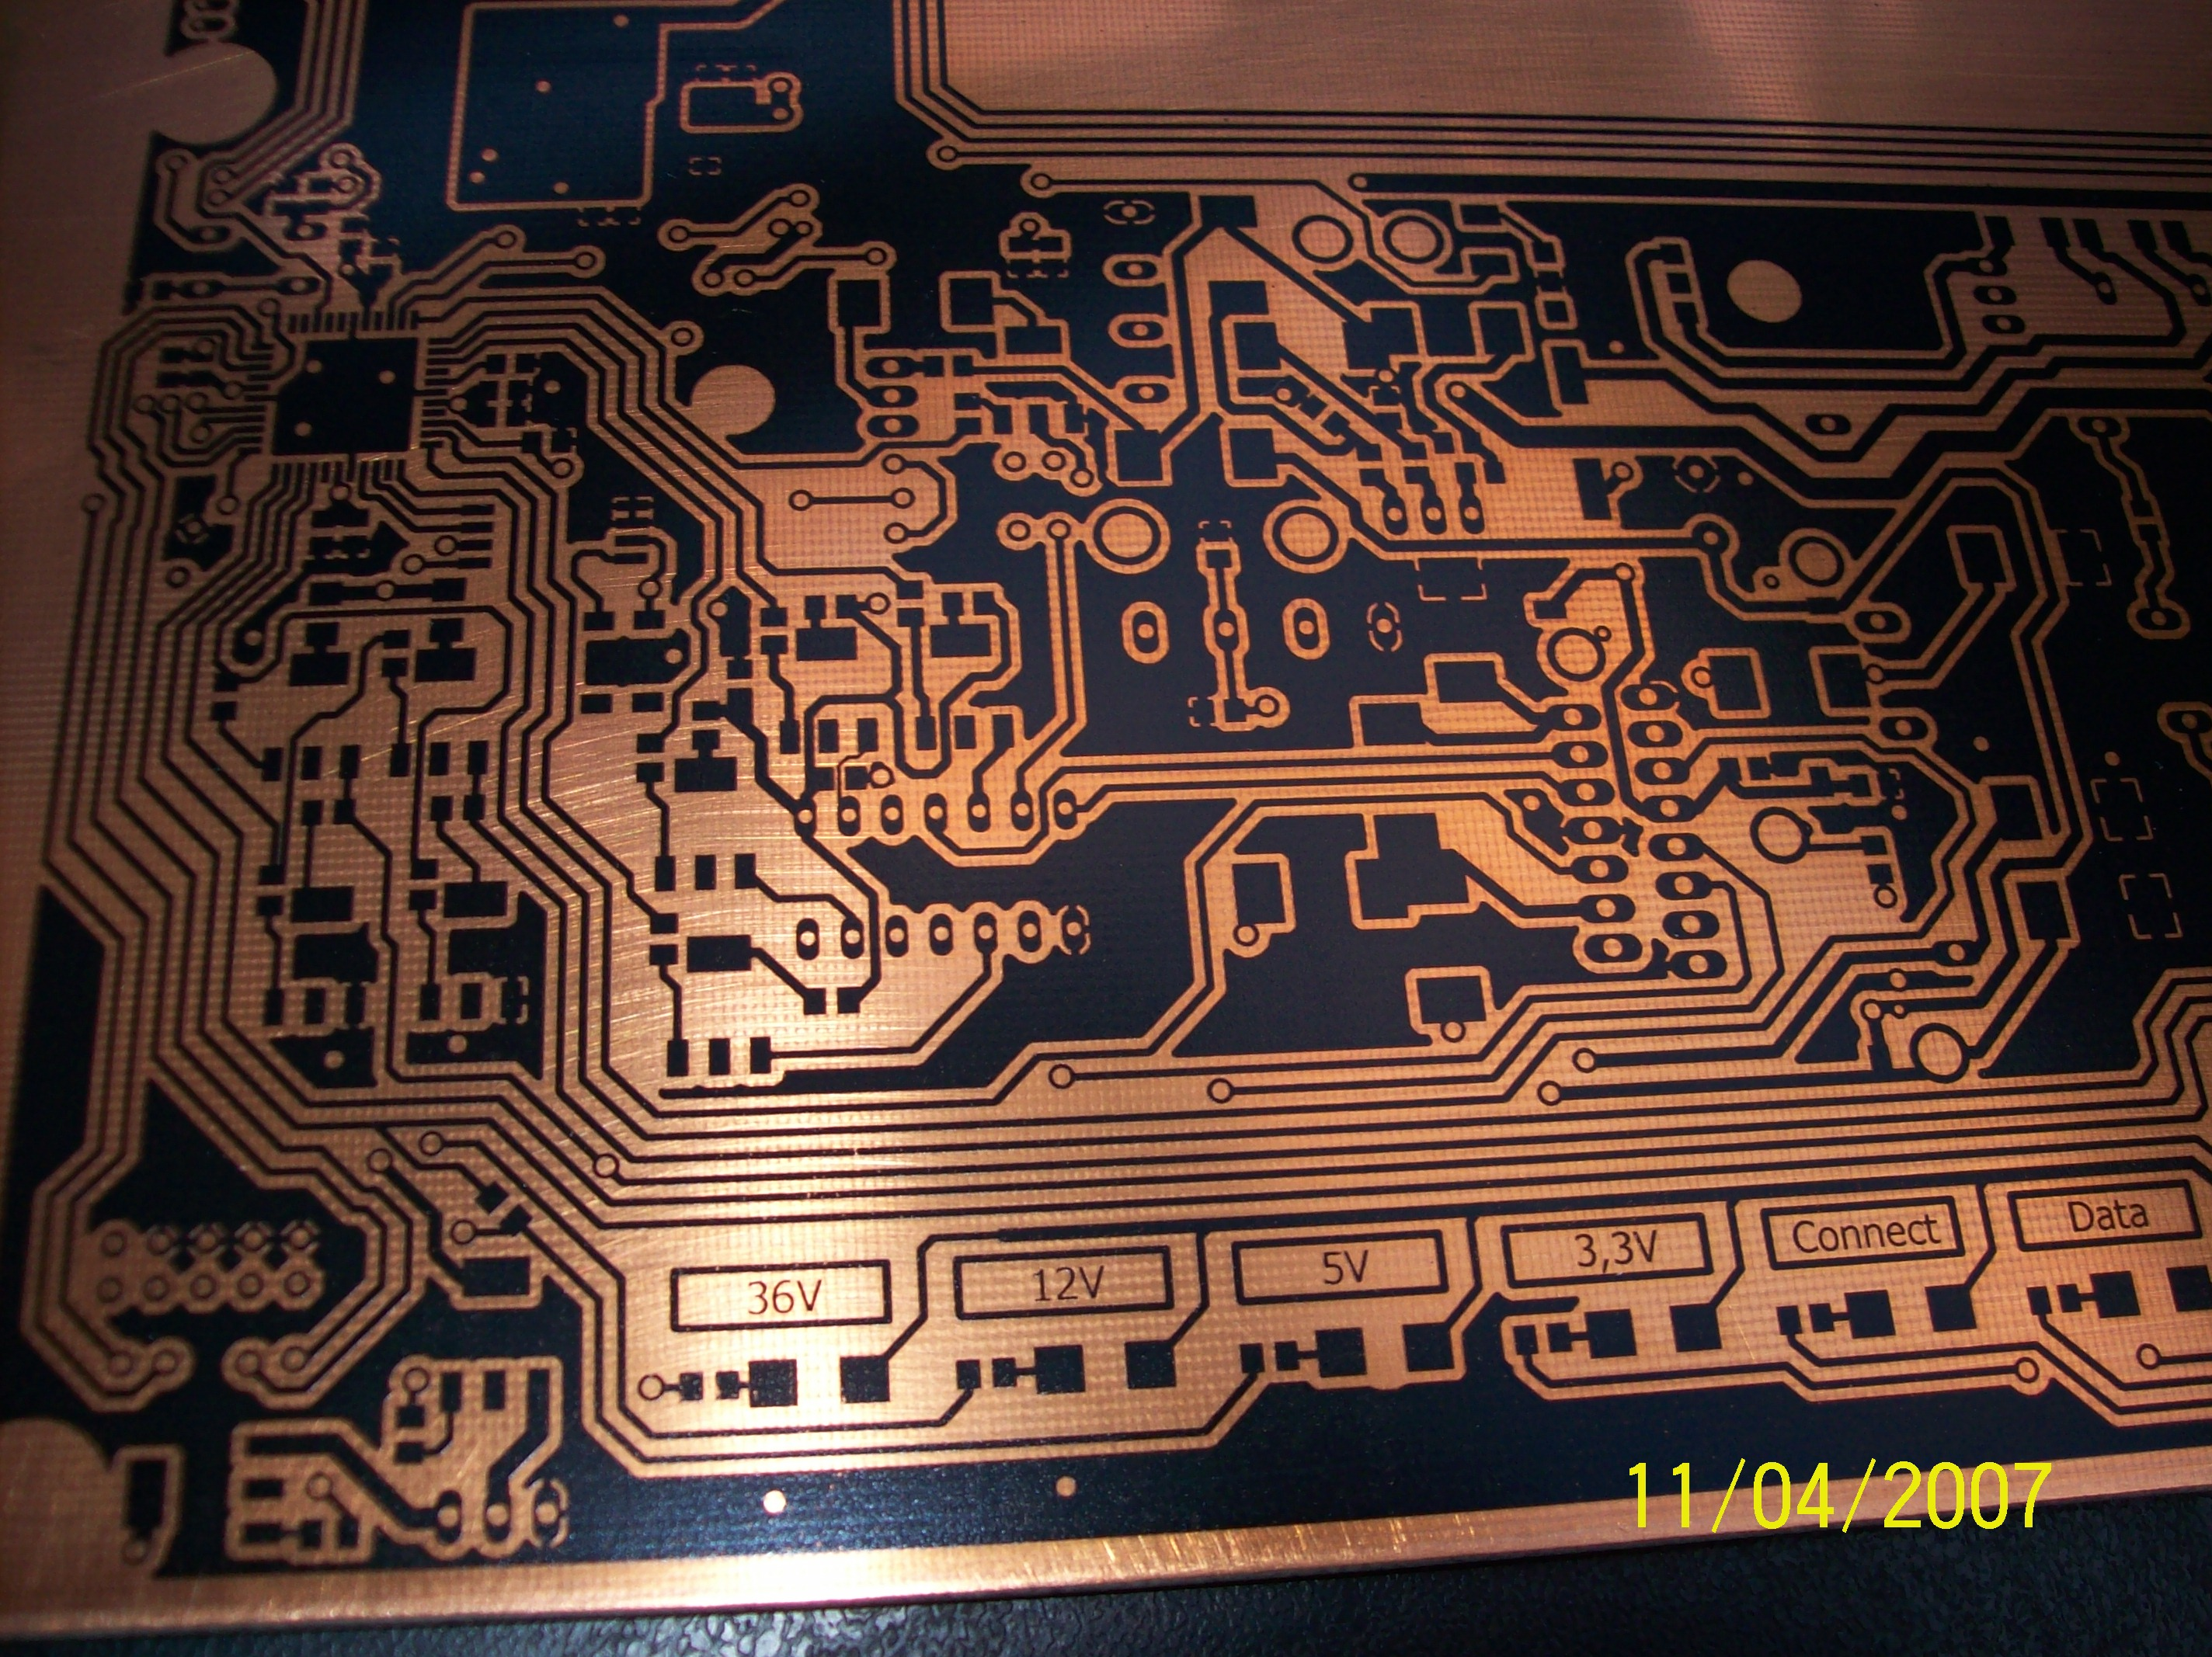 Printing with a laser printer on a PCB laminate - elektroda com